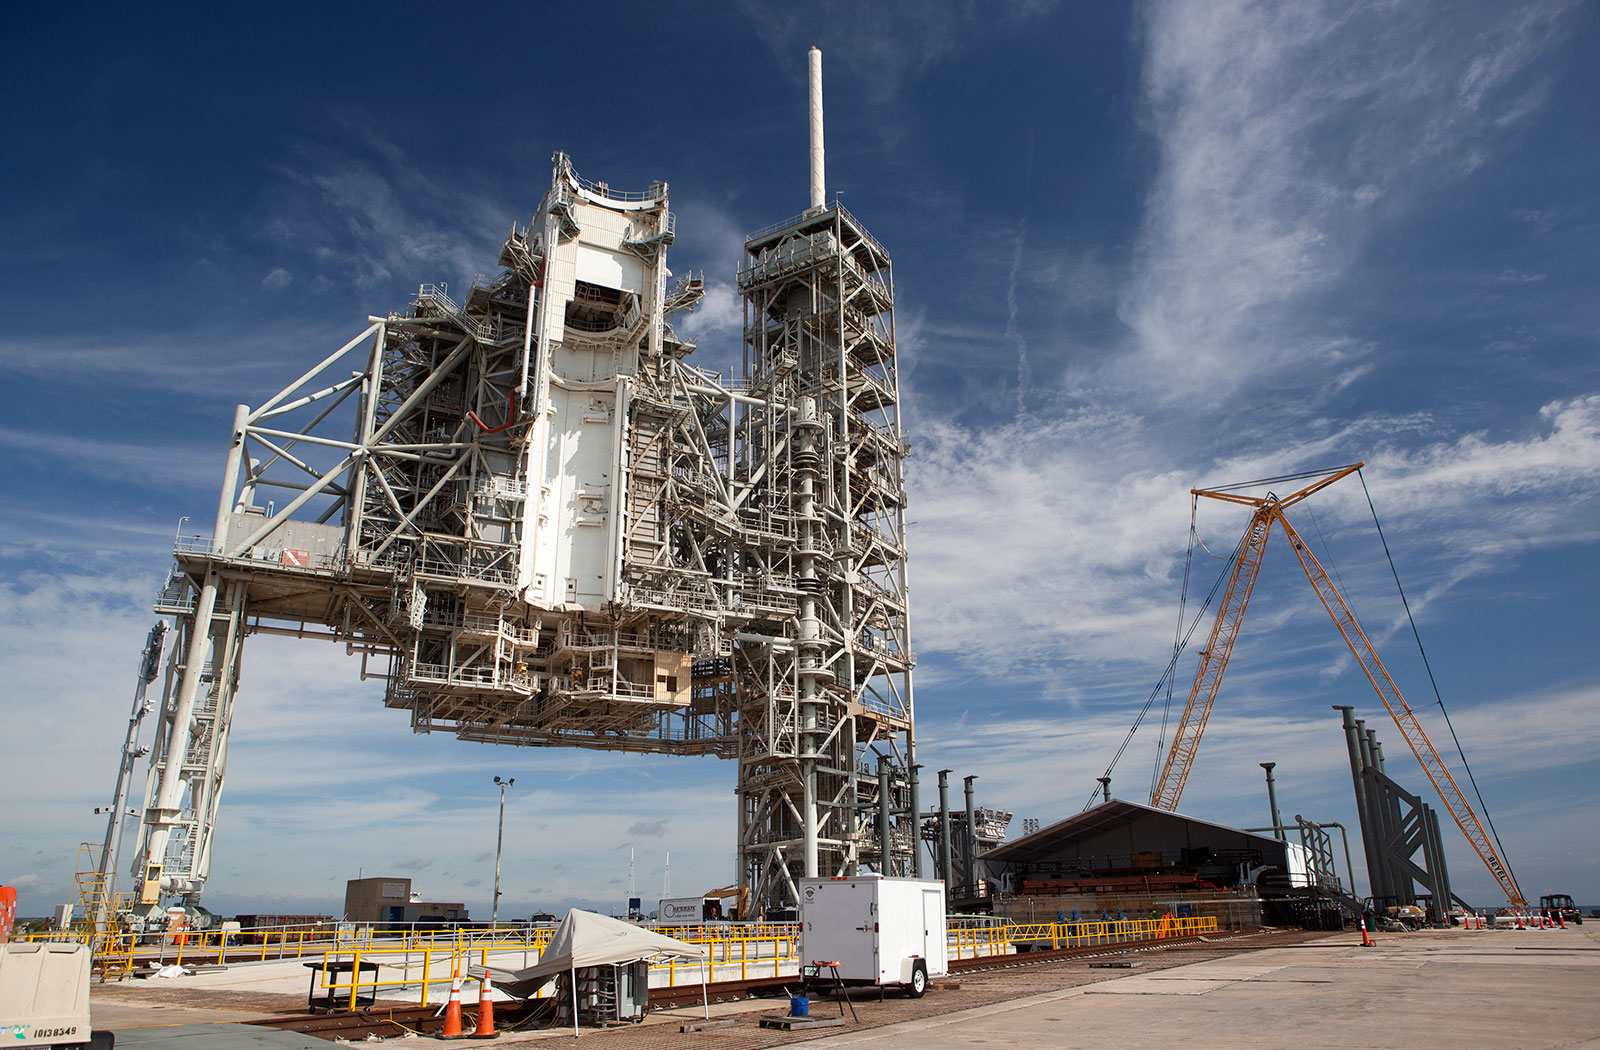 spacex launch pad 39a - photo #8